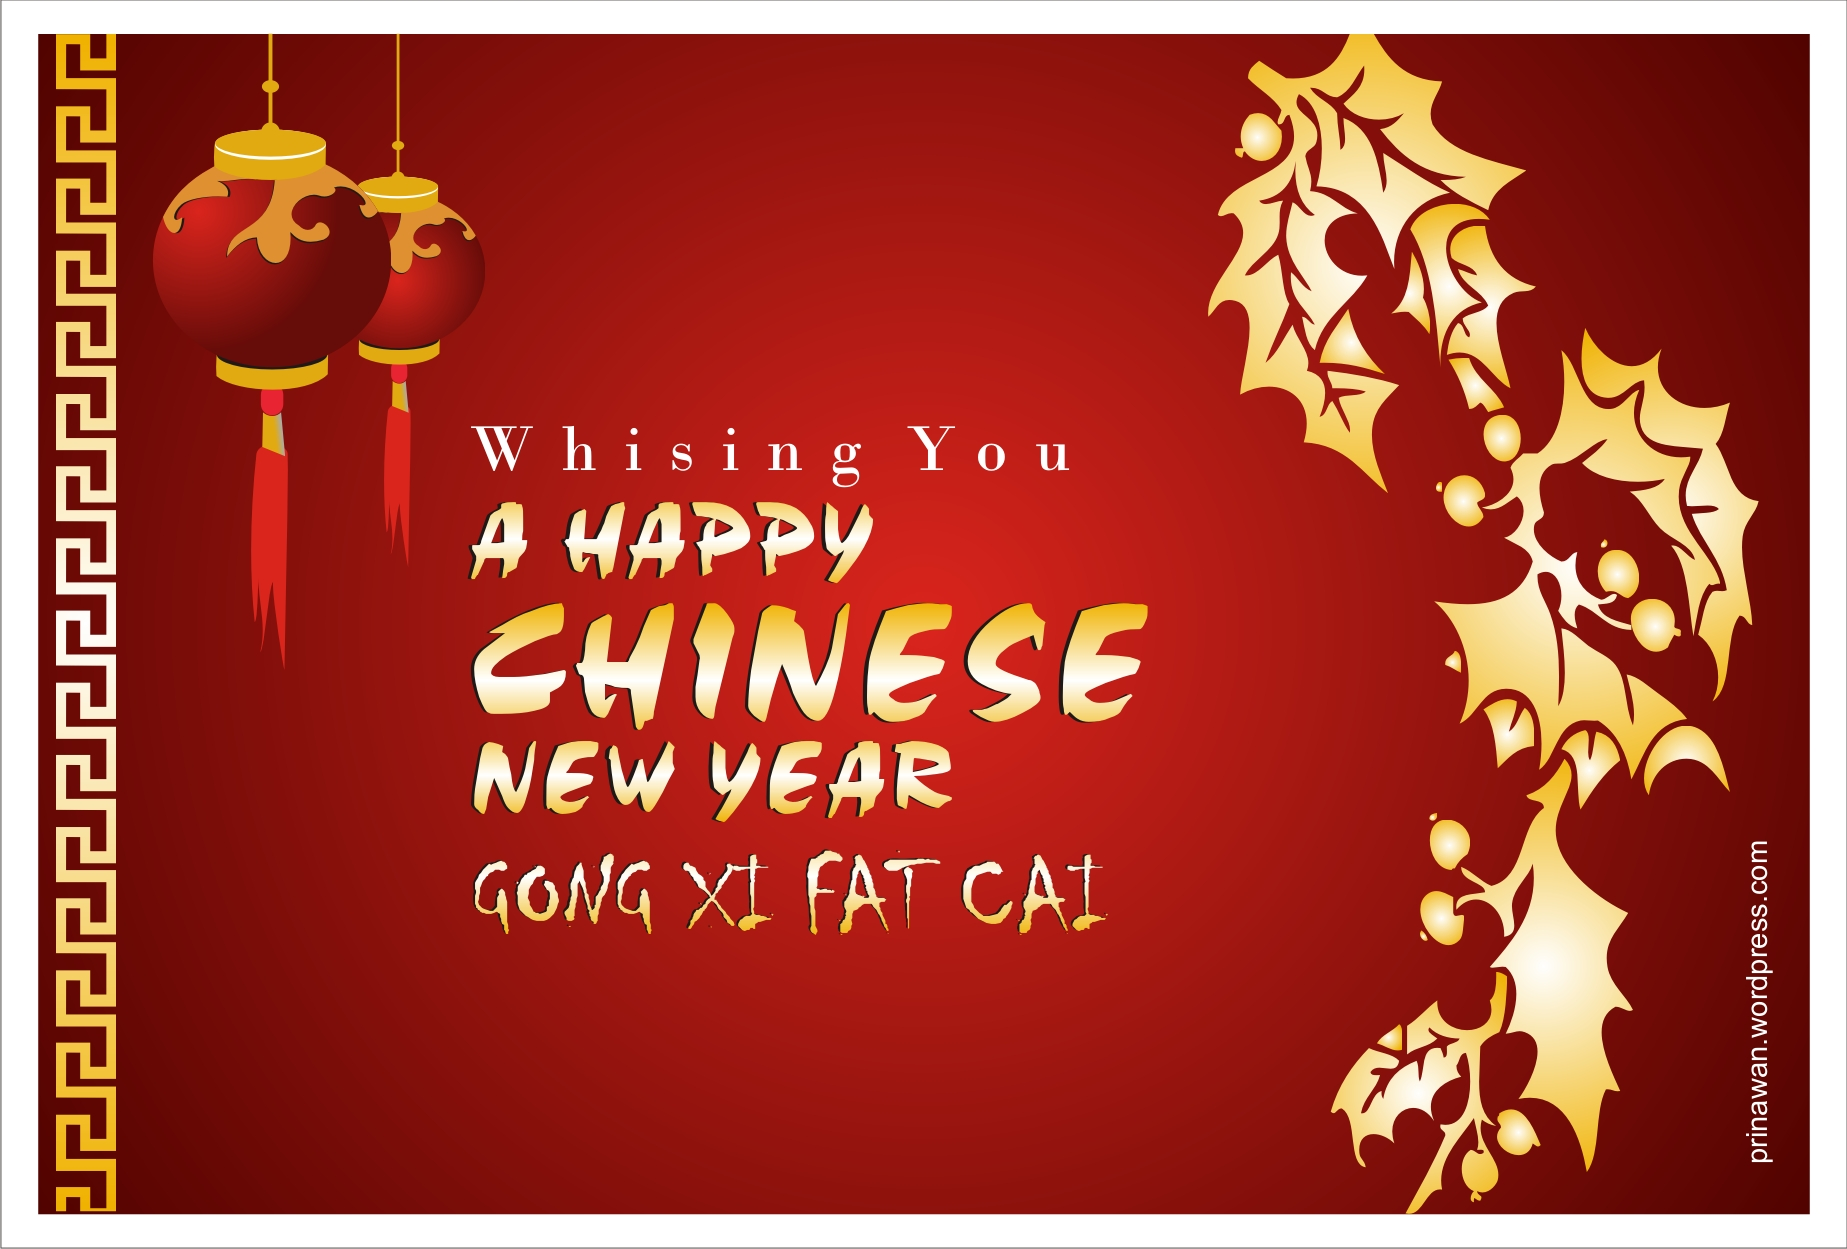 History Of Chinese New Year